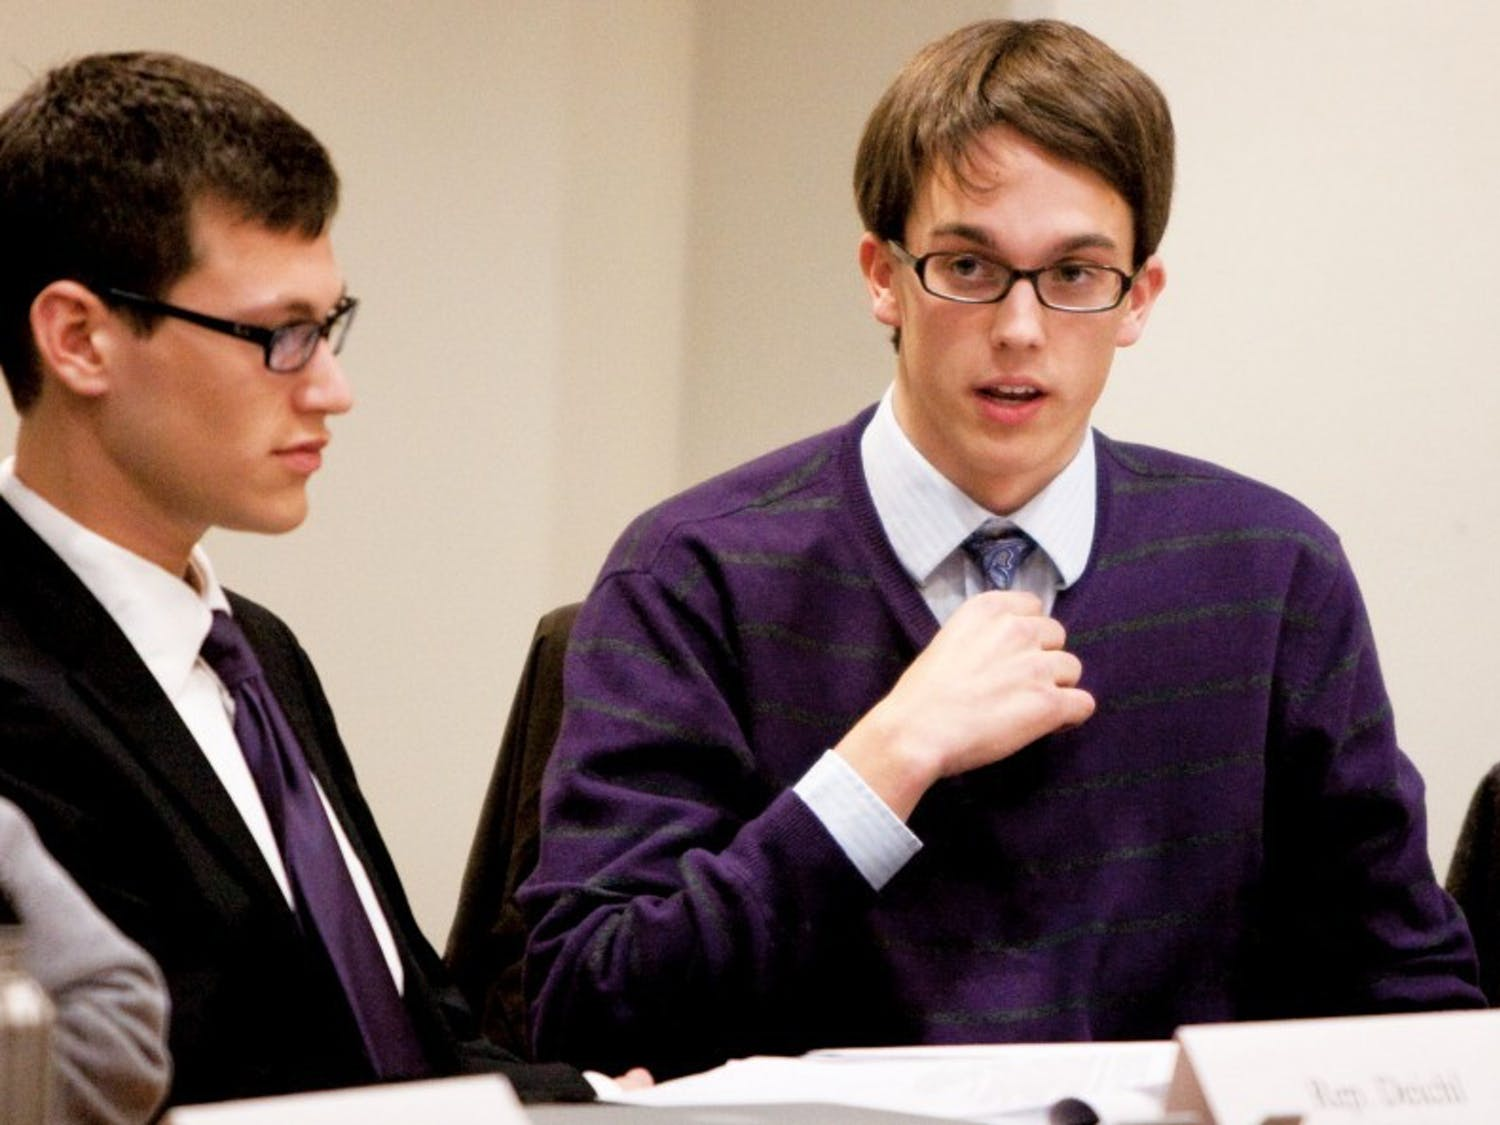 ASM Student Council discusses, approves finalized internal budget